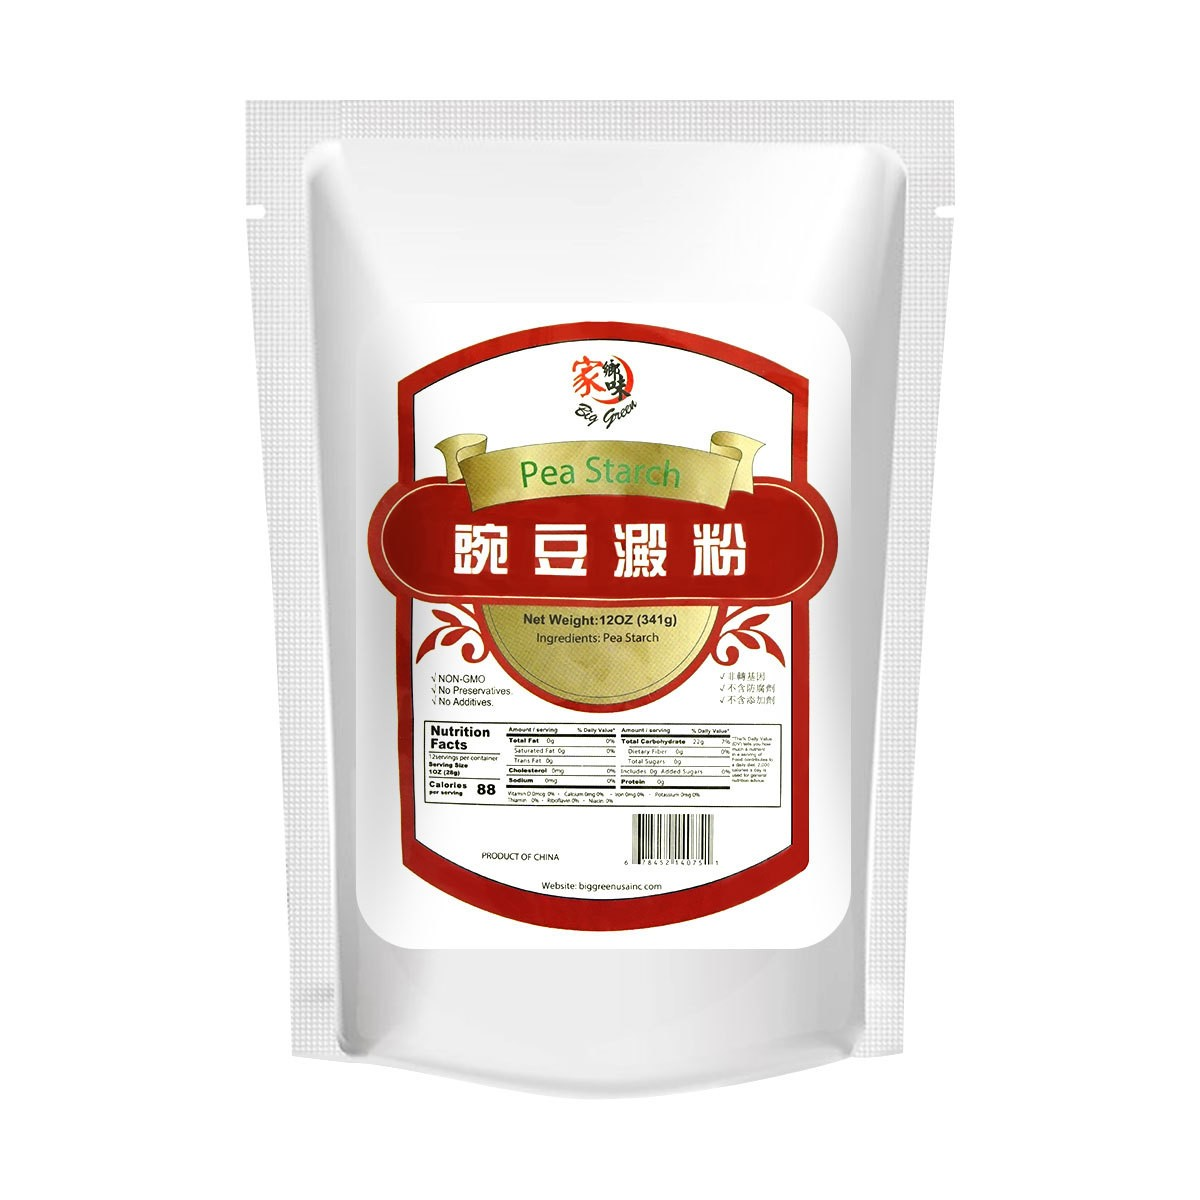 Yamibuy.com:Customer reviews:Pea Starch 341g